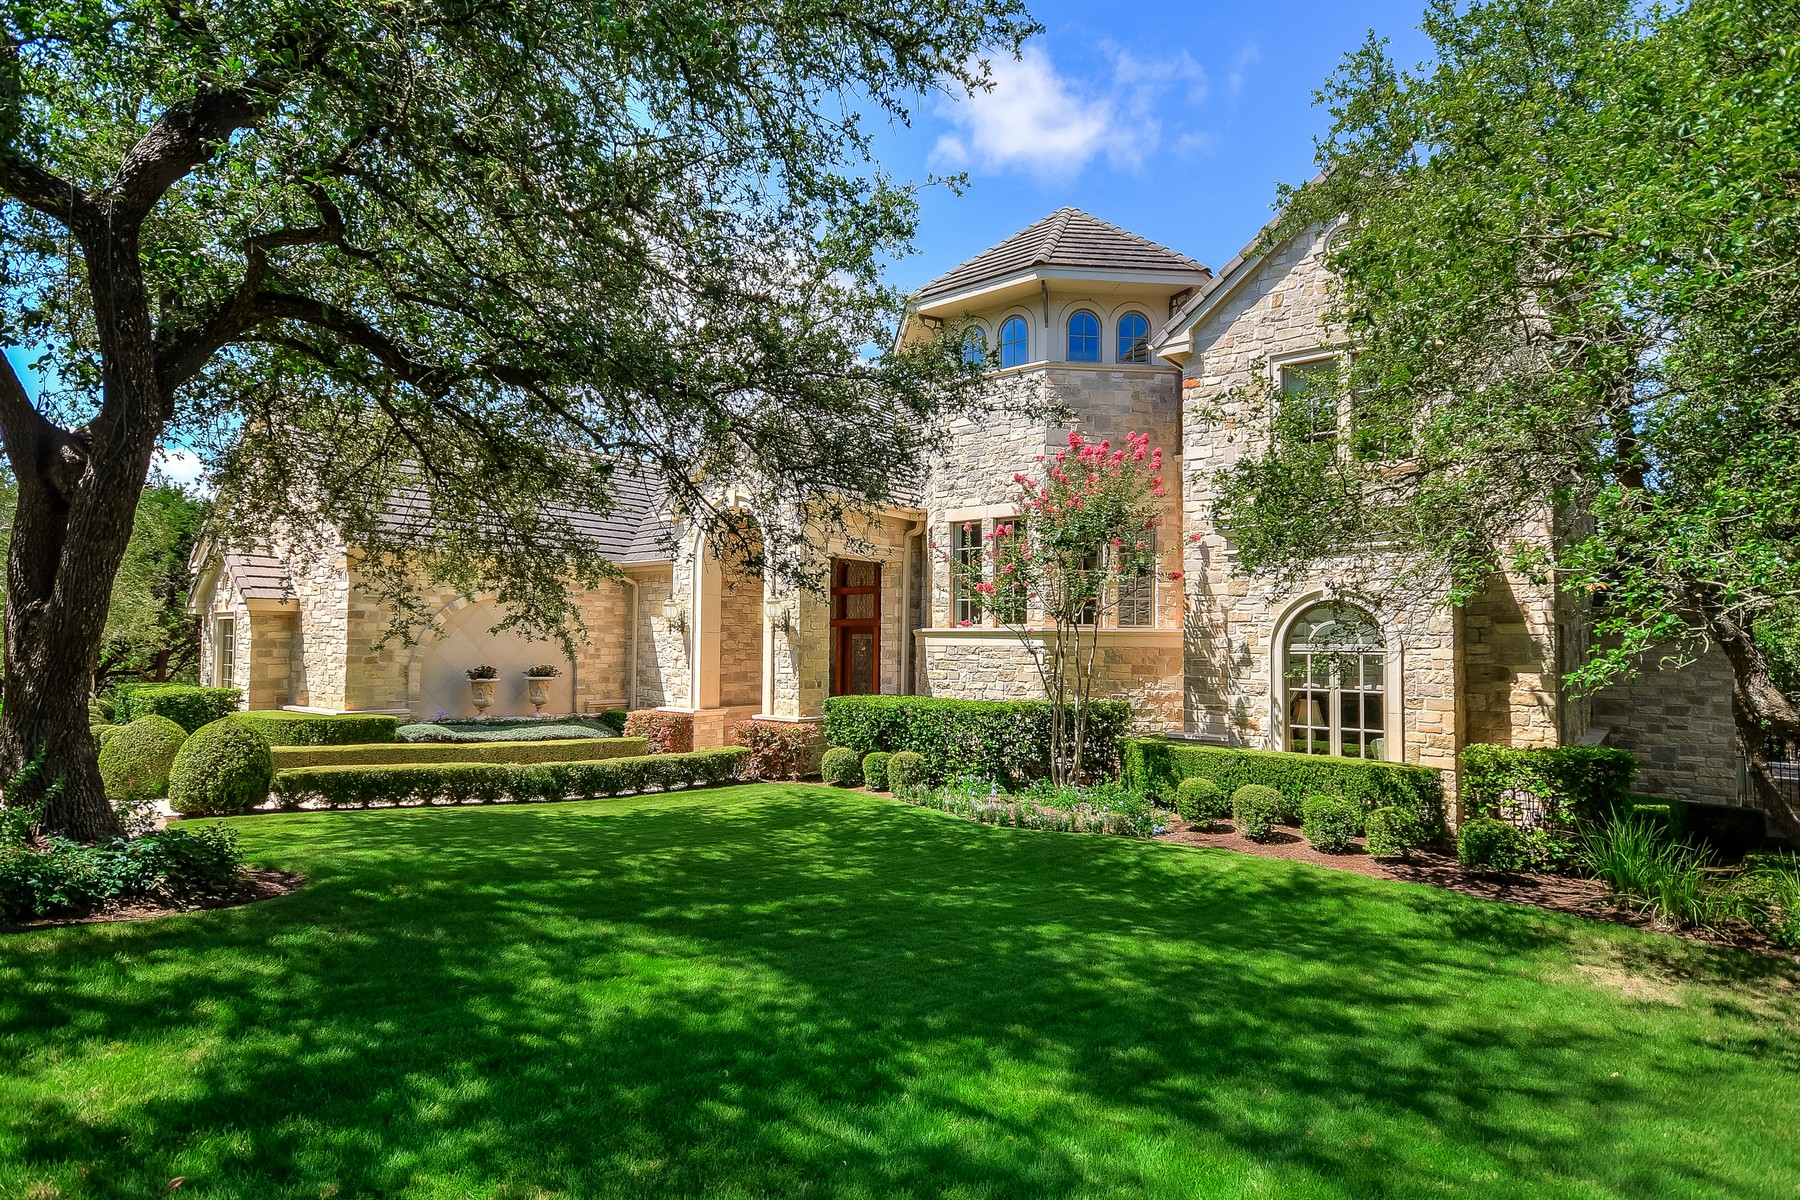 Single Family Home for Sale at Outstanding Barton Creek Estate Home 8409 Chalk Knoll Dr Austin, Texas 78735 United States